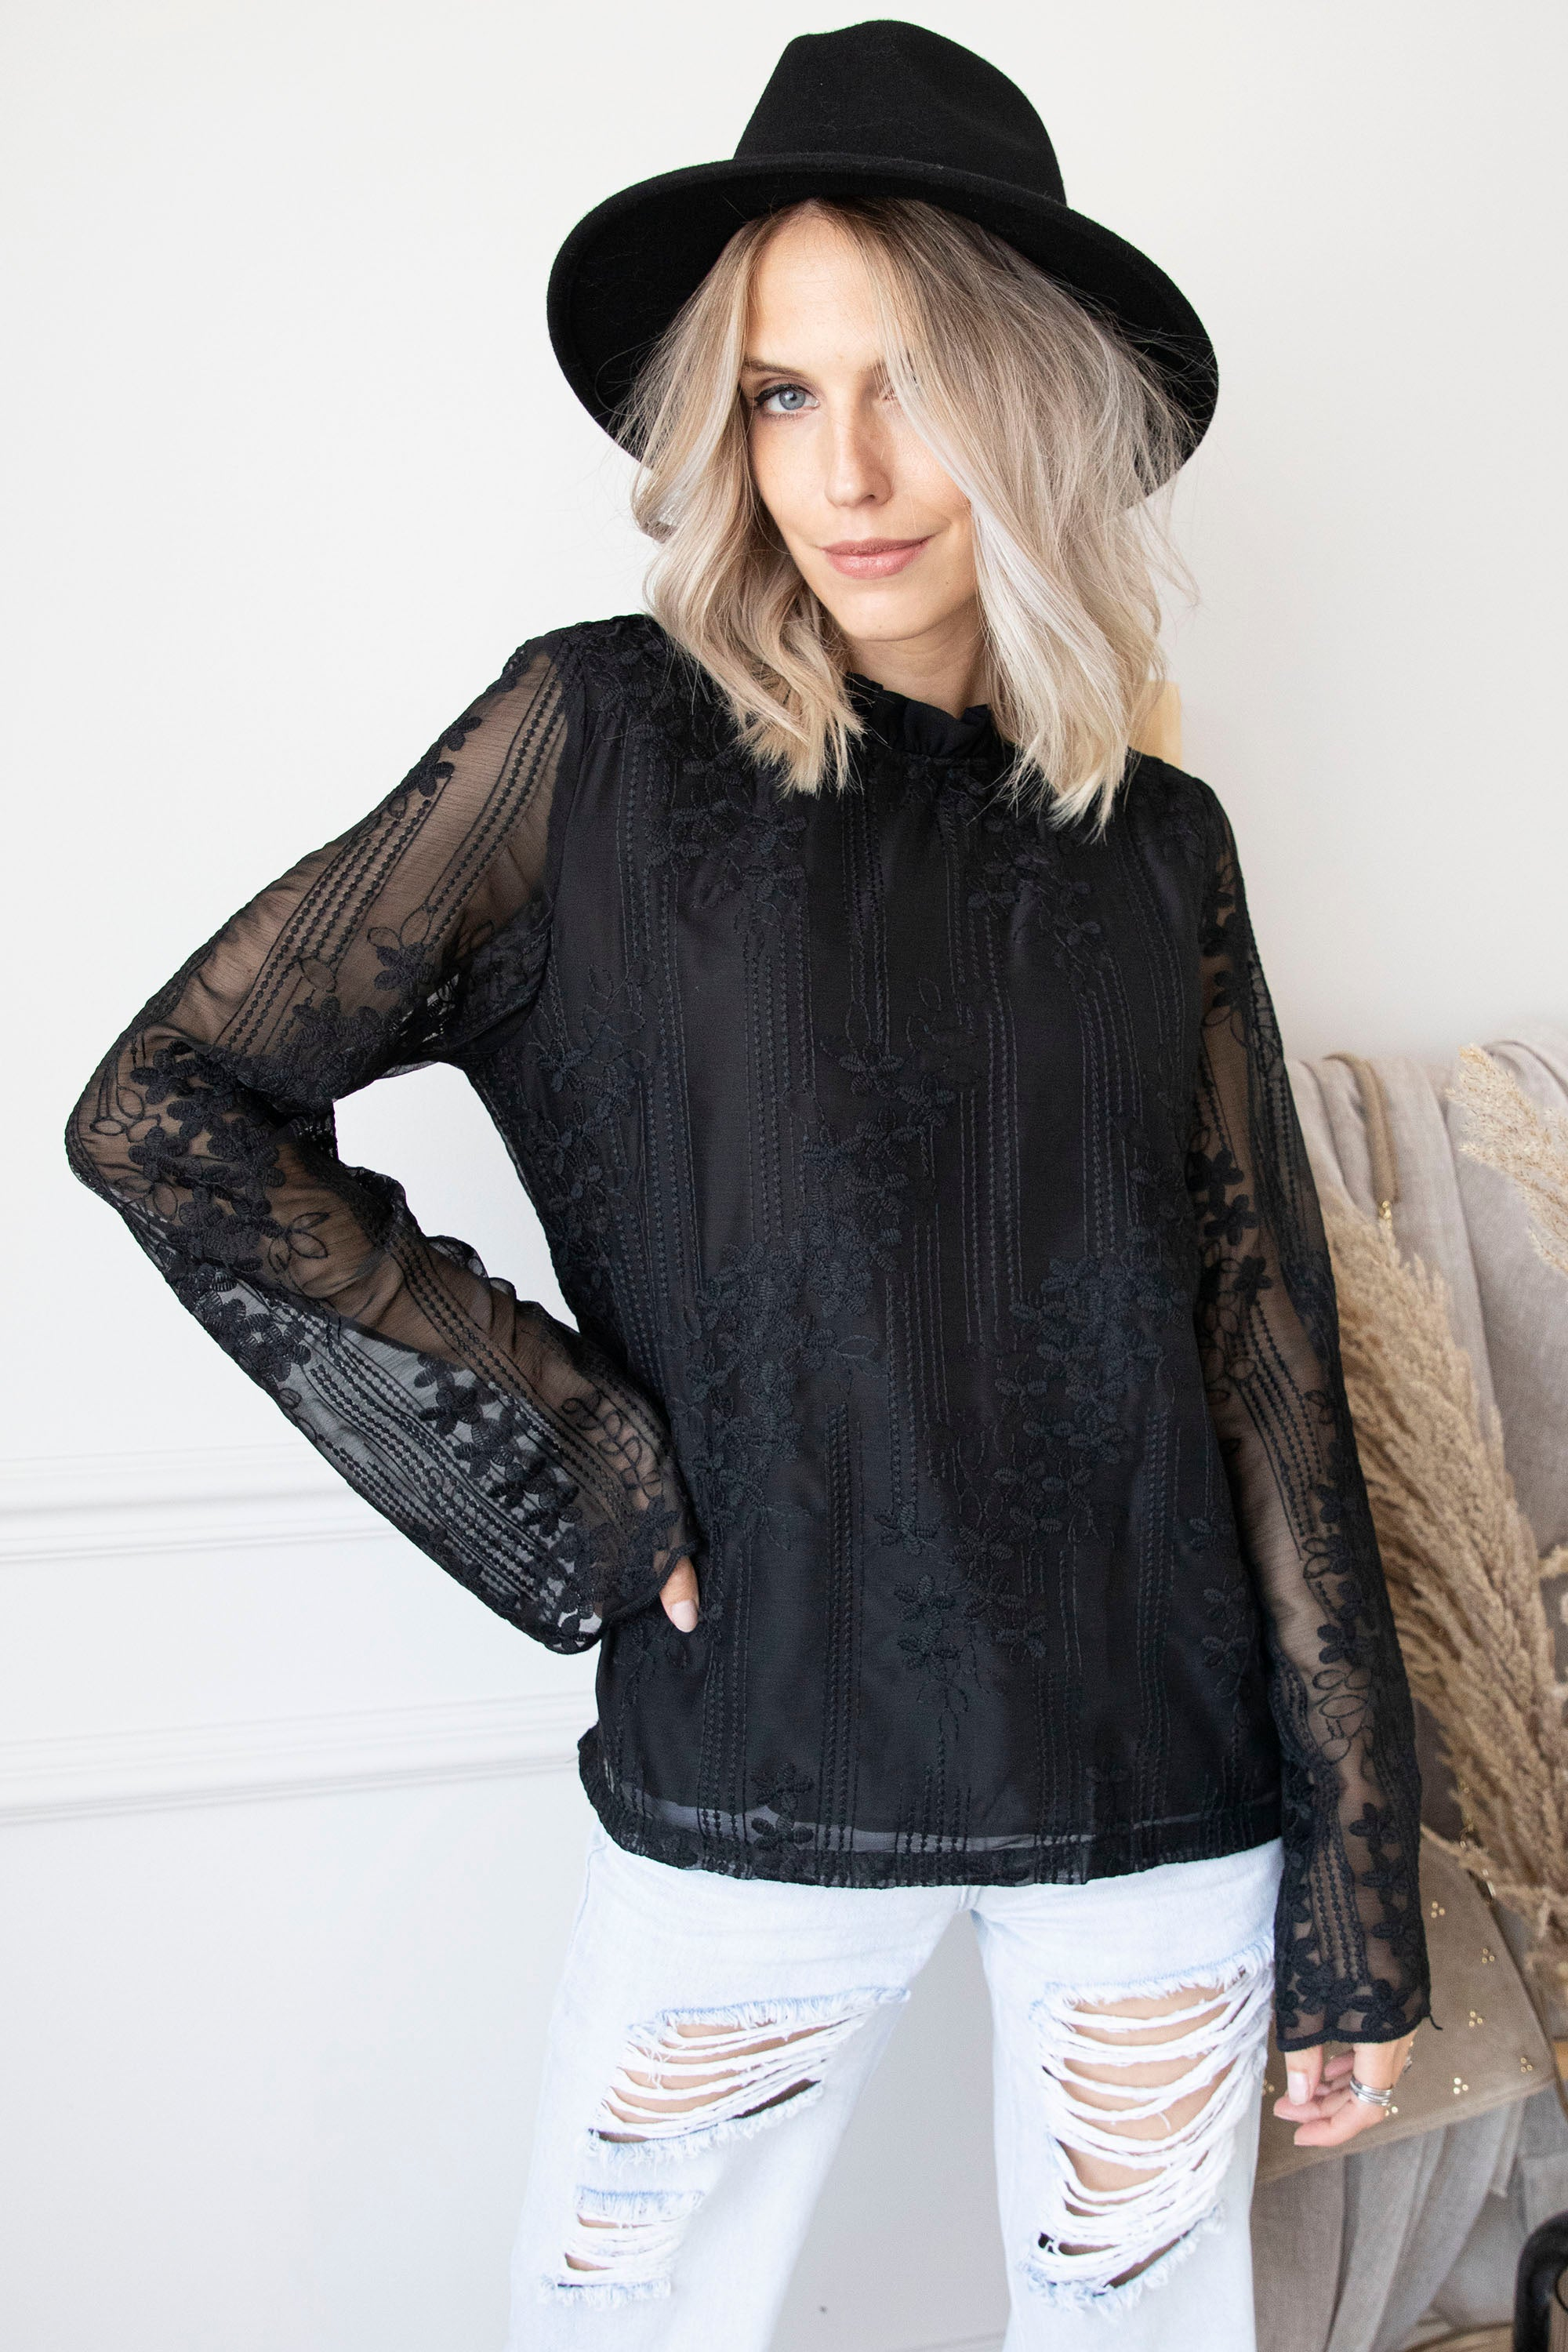 Florina Black - Blouse